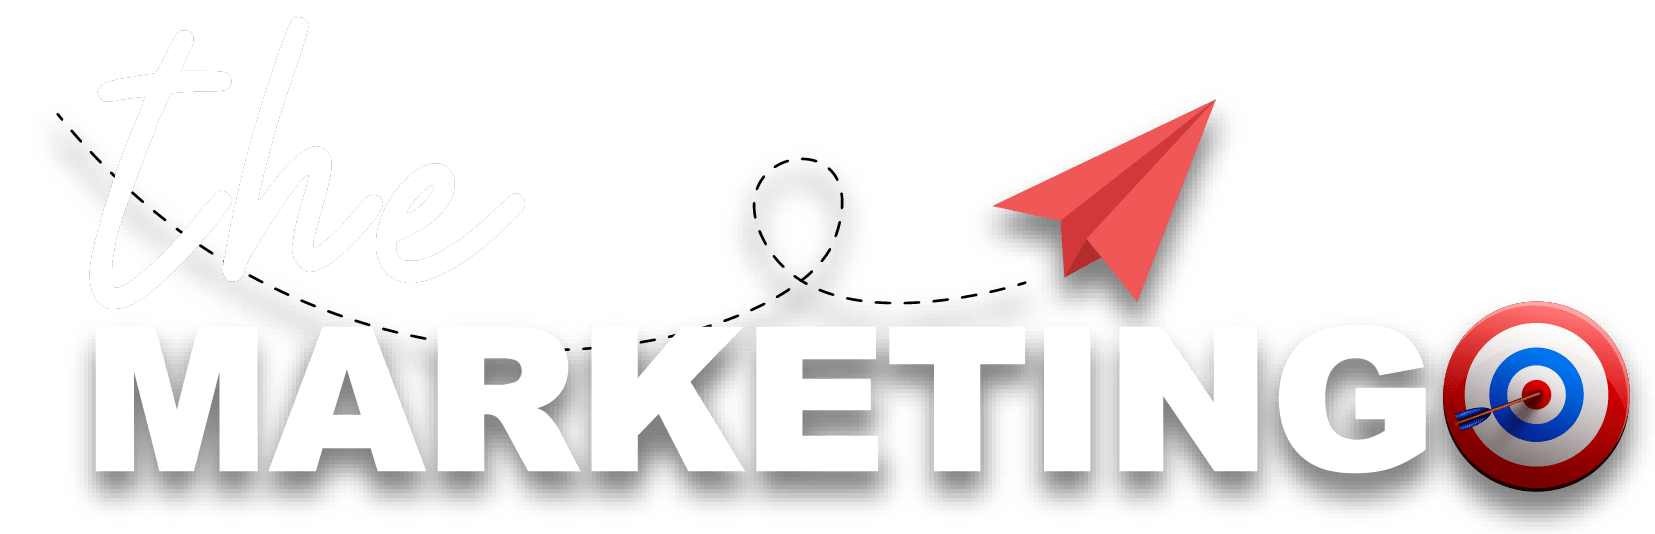 The Marketingo